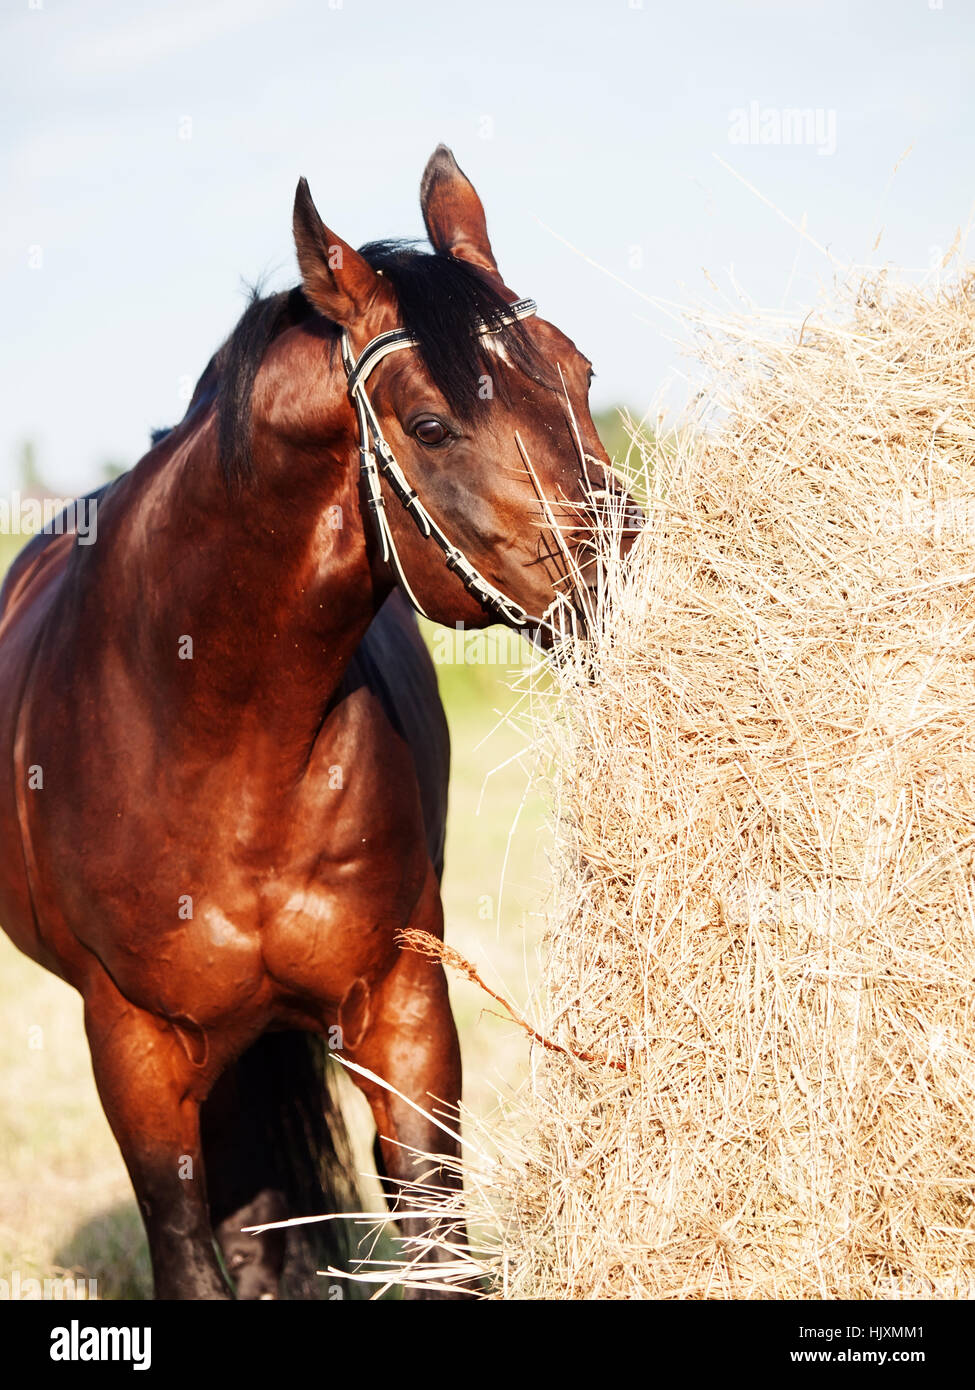 eating hay bay horse from haystack in field - Stock Image